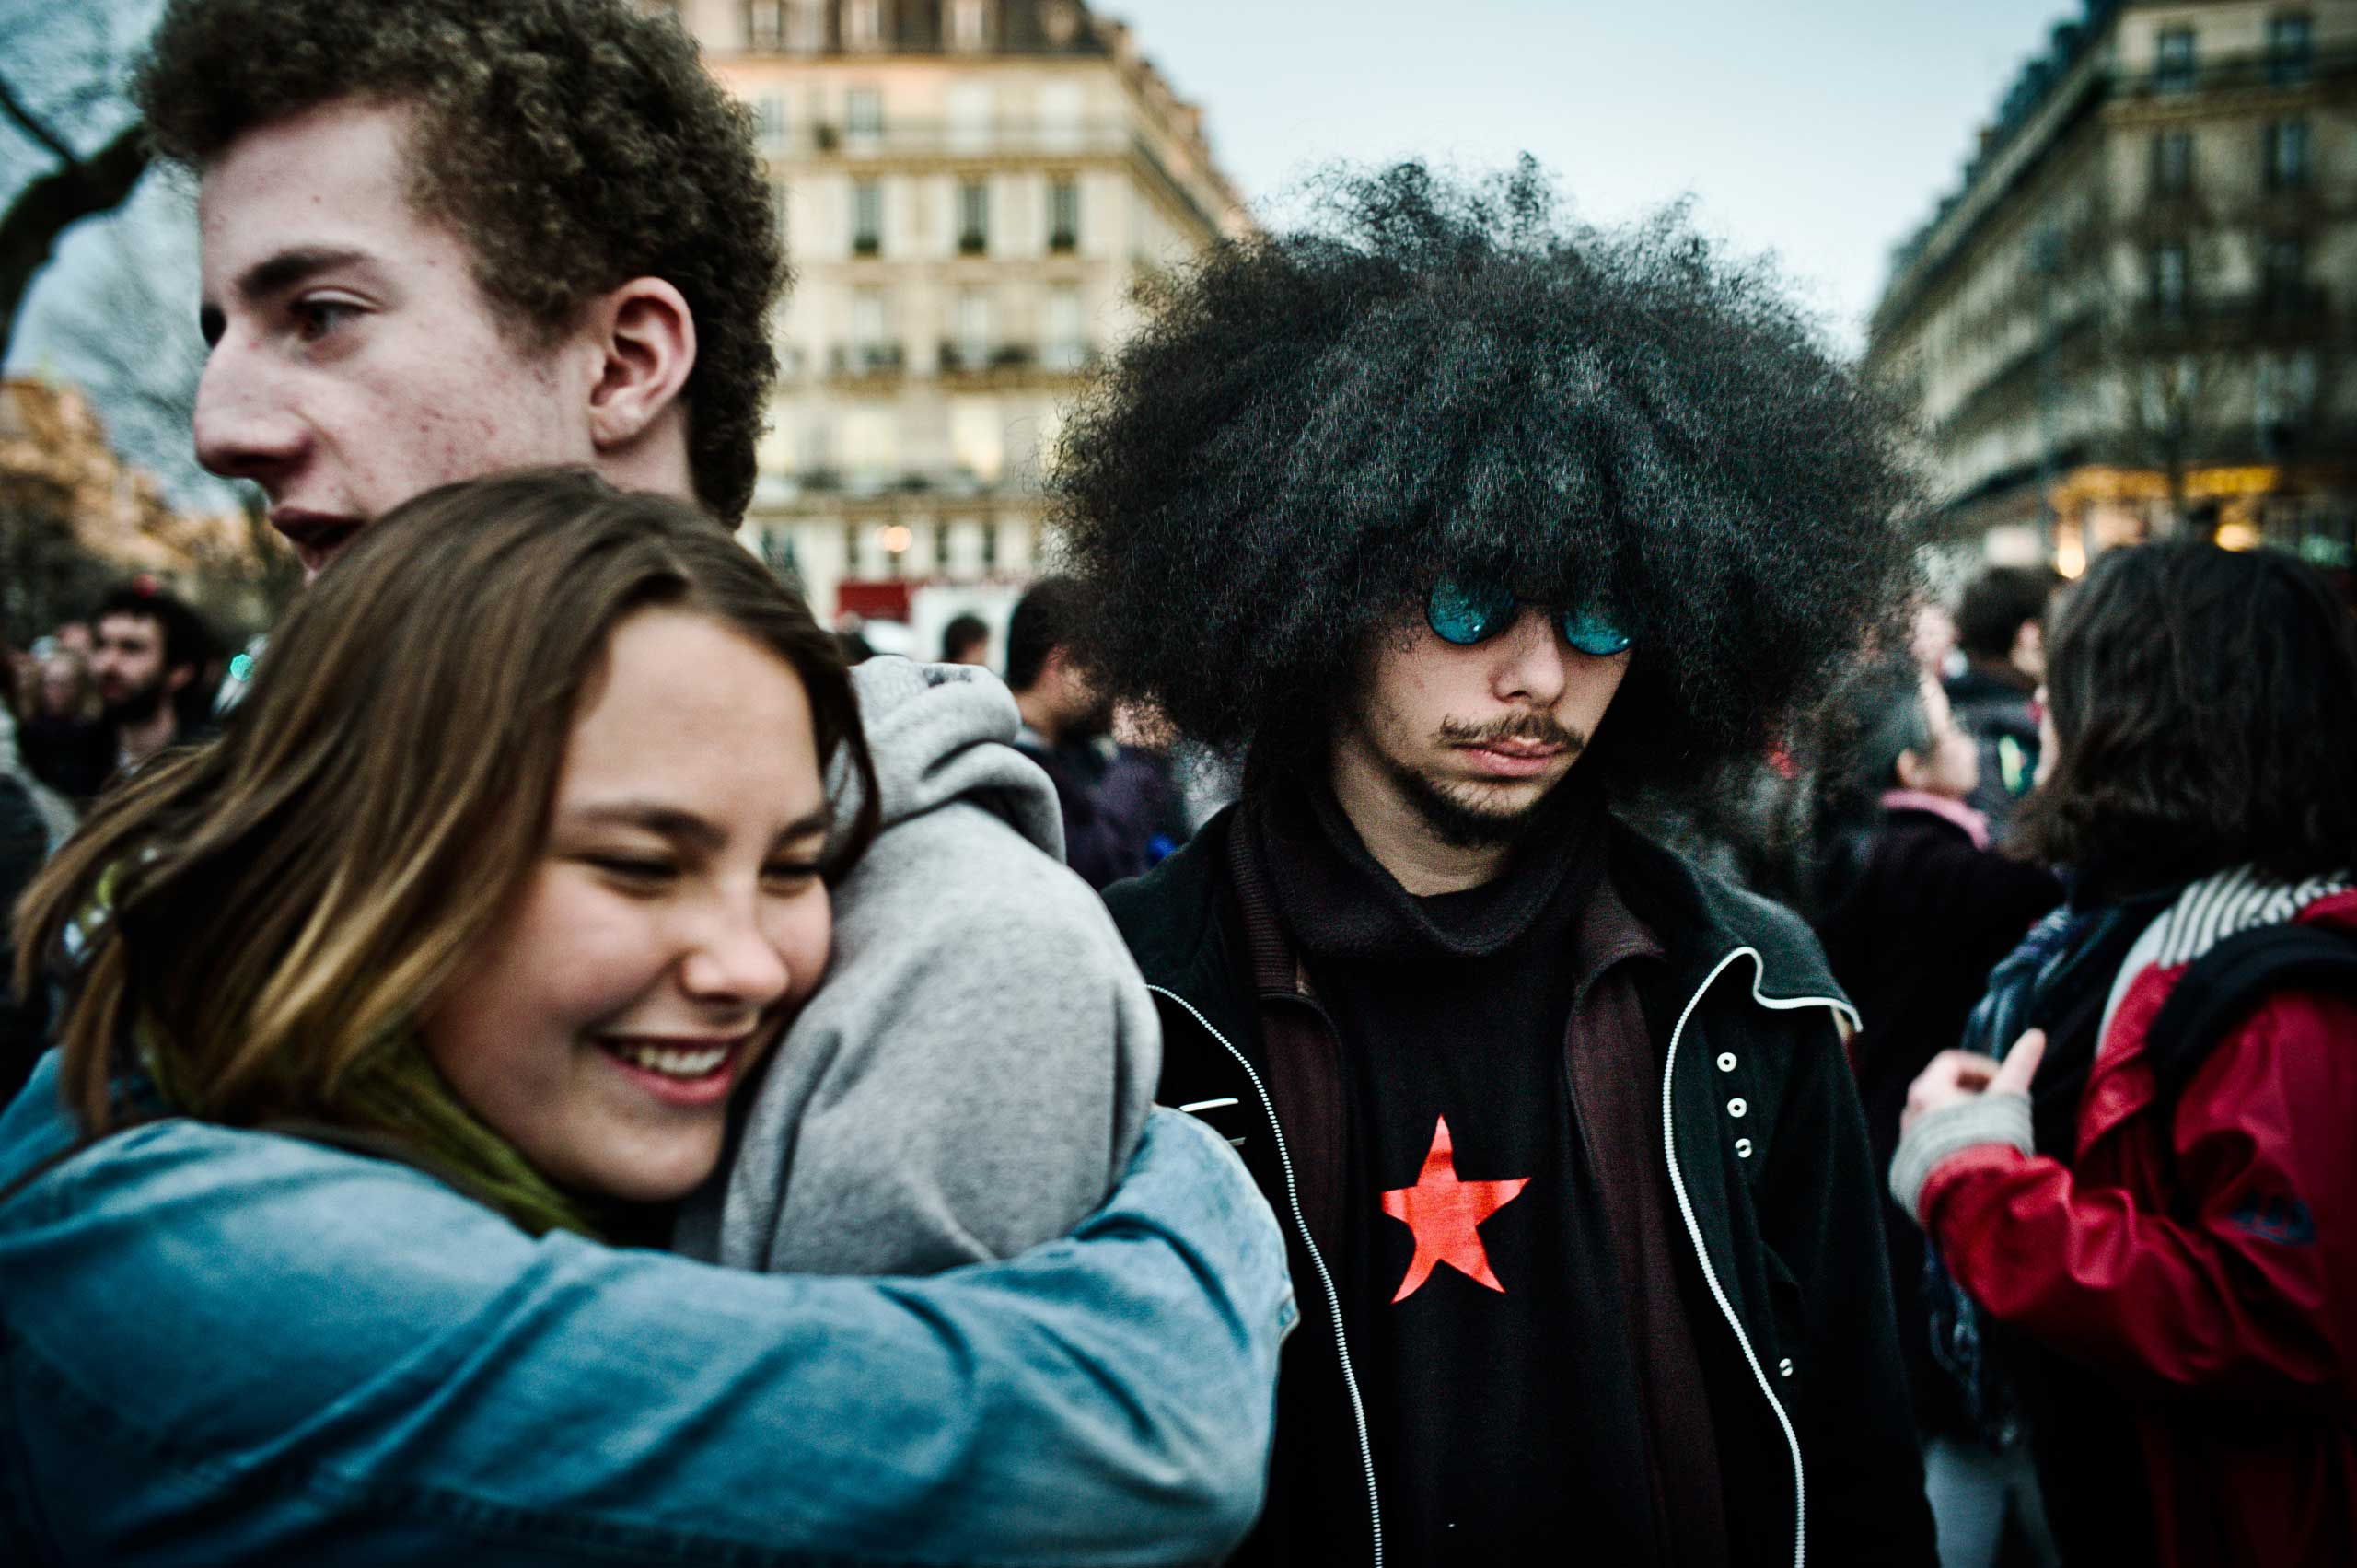 People coming together at the Nuit Debout, April 4, 2016.